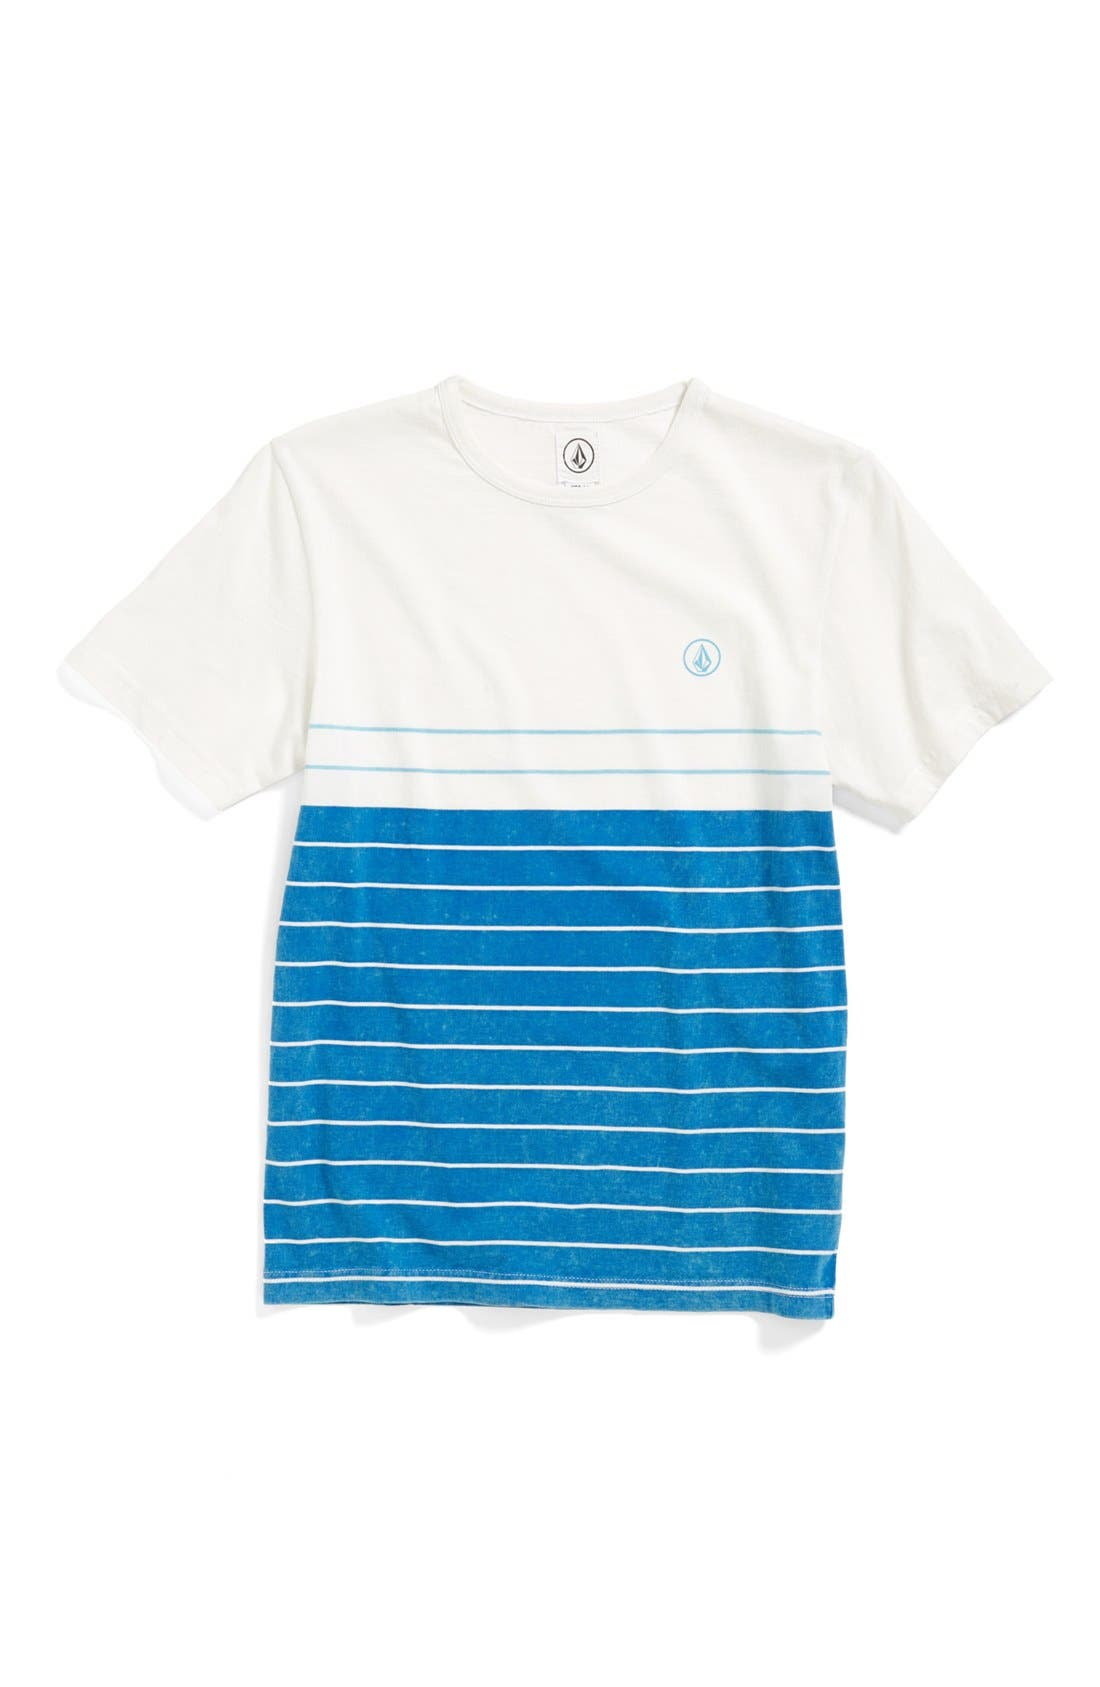 Alternate Image 1 Selected - Volcom 'Ogden' Short Sleeve Crewneck T-Shirt (Big Boys)